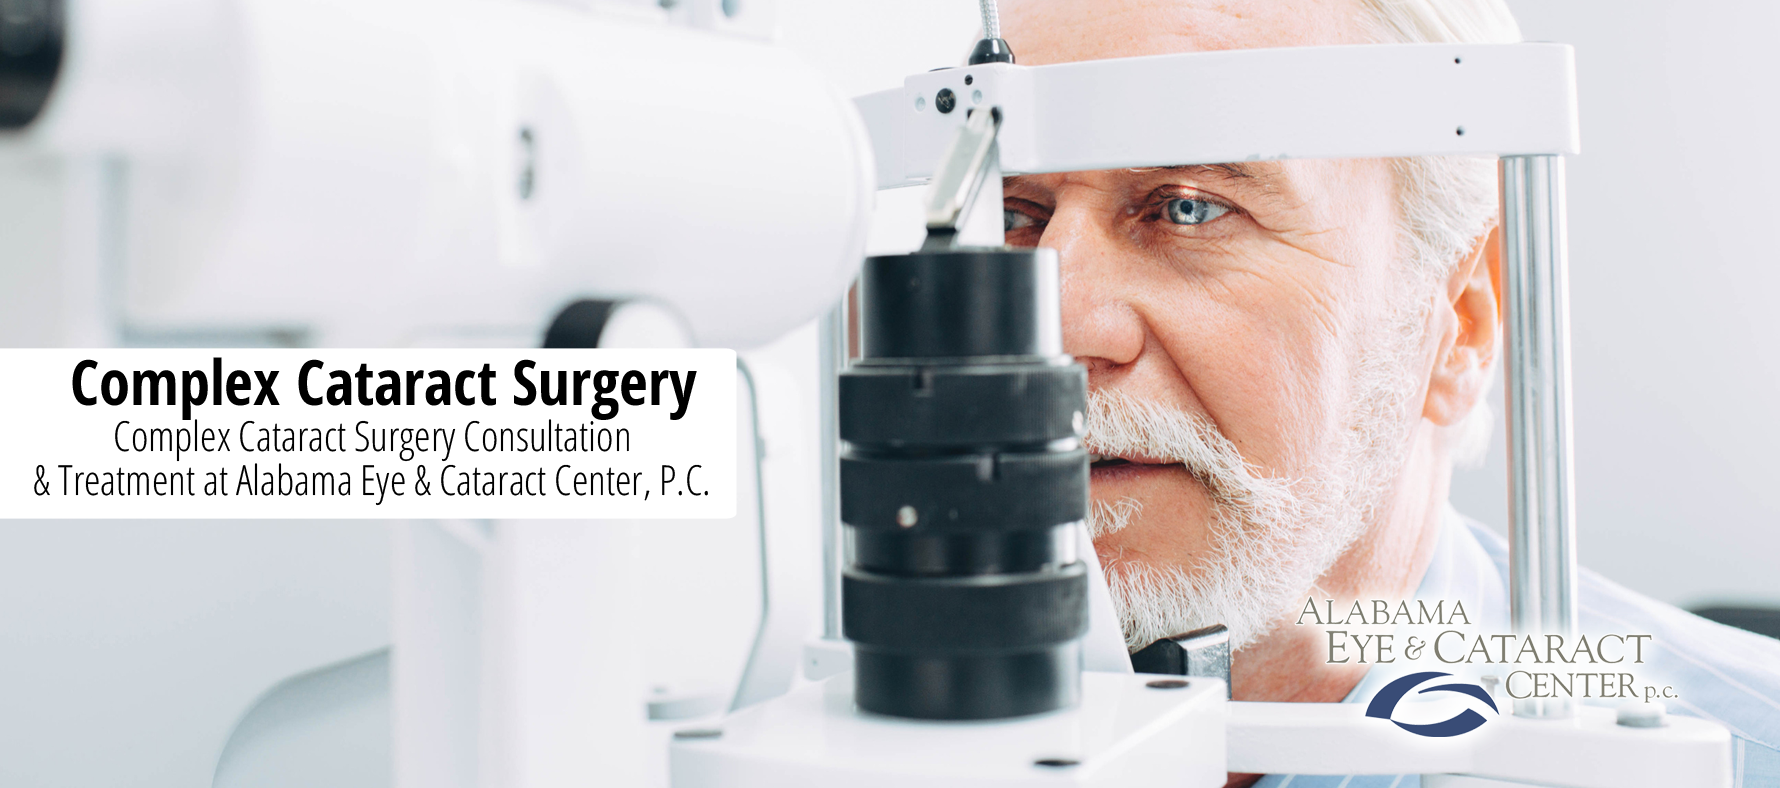 Complex Cataract Surgery Header Image